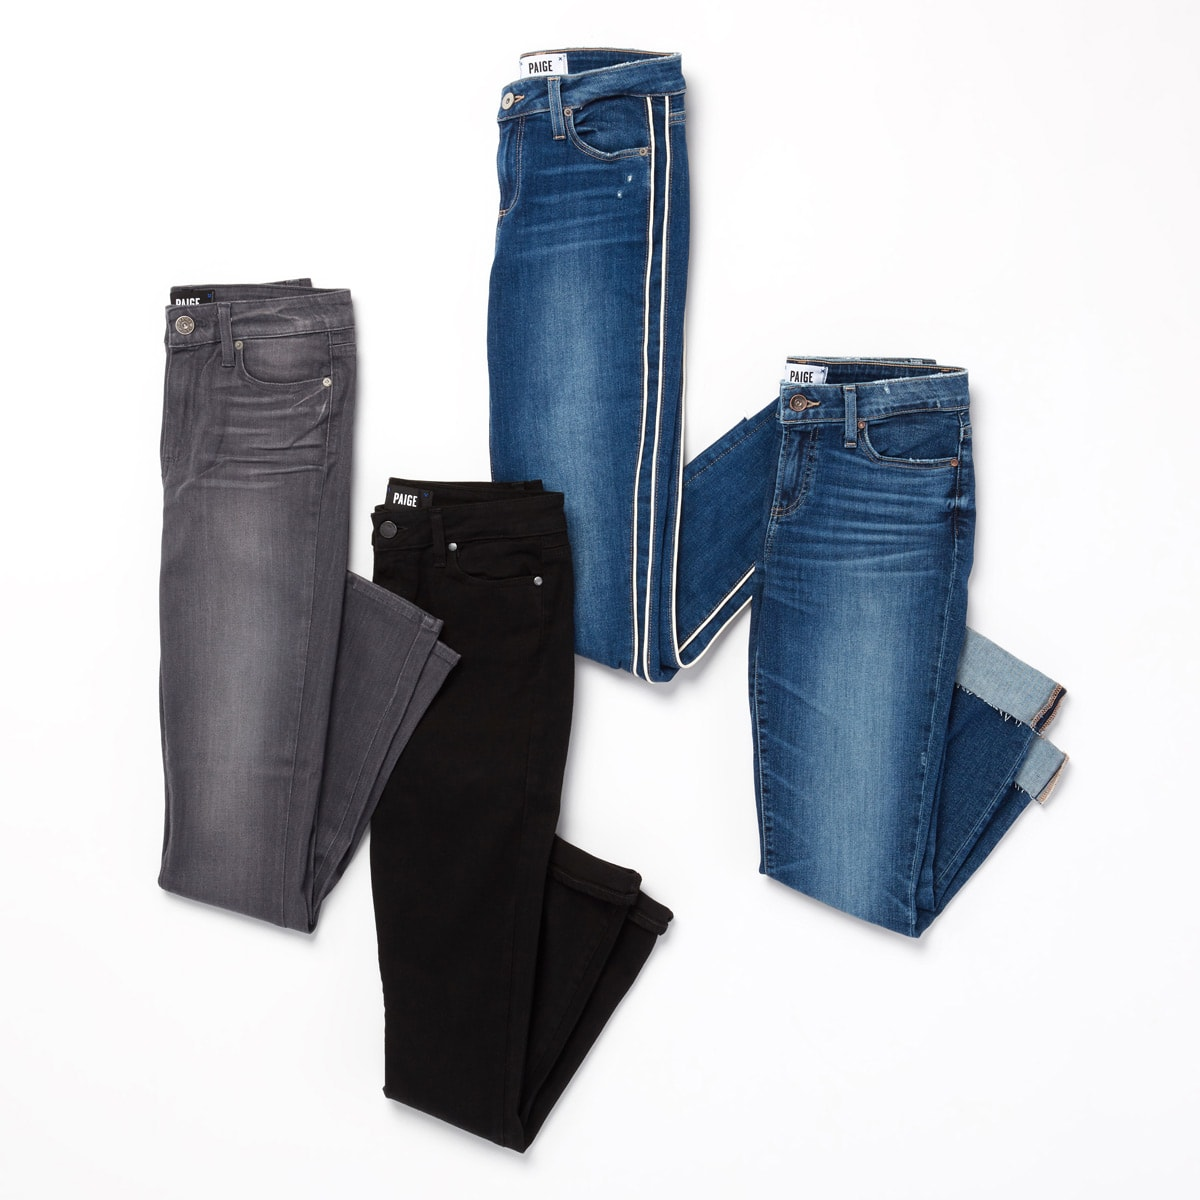 Paige denim comes in many styles like skinny, straight, boyfriend and bootcut